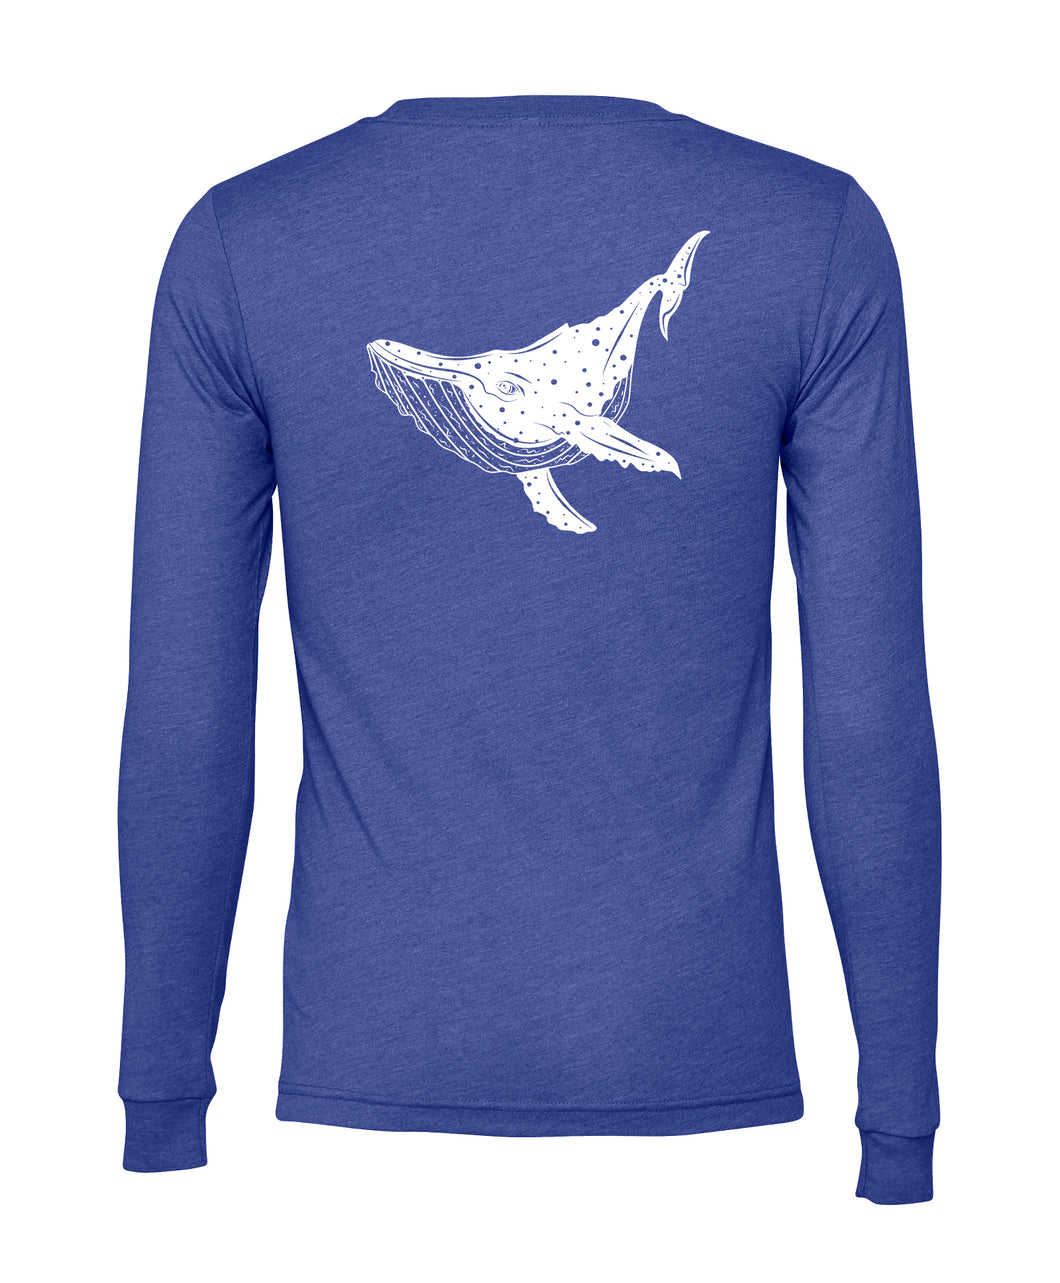 Whale Unisex Long Sleeve T-shirt